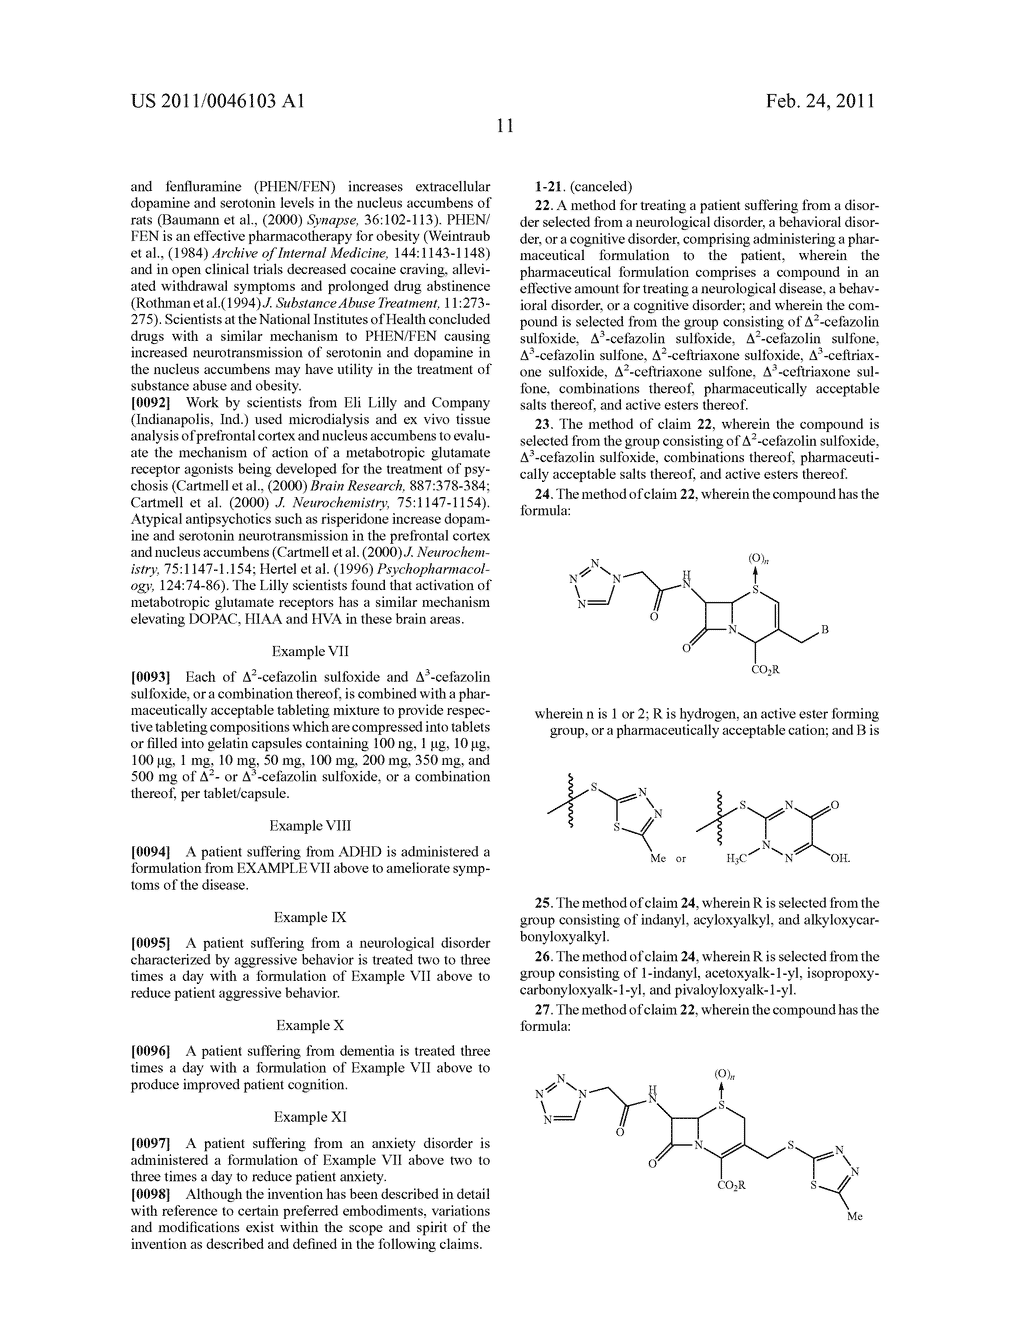 Neurotherapeutic Cephalosporin Sulfoxide and Sulfone-Containing Compositions - diagram, schematic, and image 17